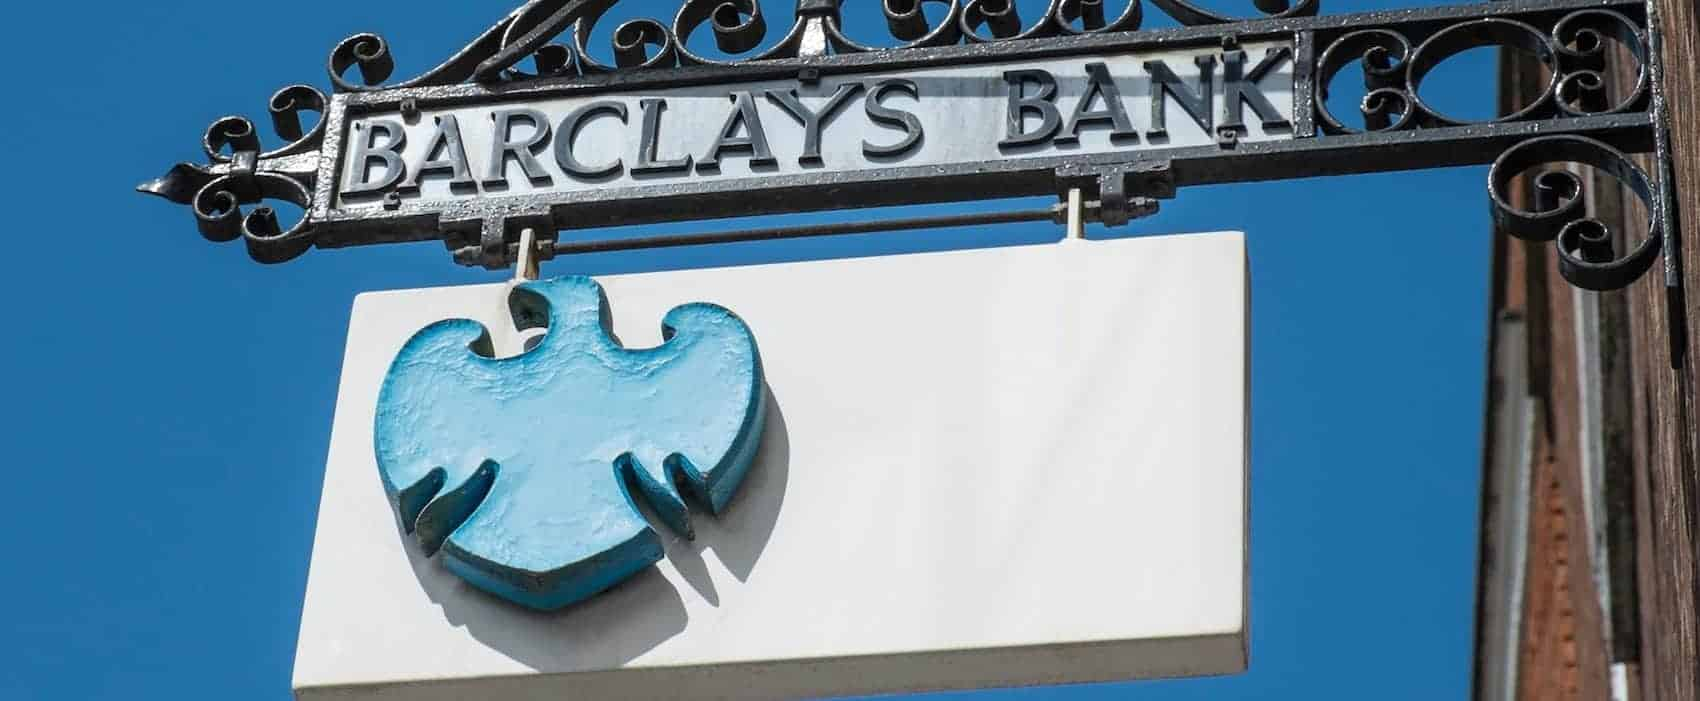 barclays joins cls blockchain consortium in search of swift alternative - Barclays Joins CLS Blockchain Consortium in Search of Swift Alternative